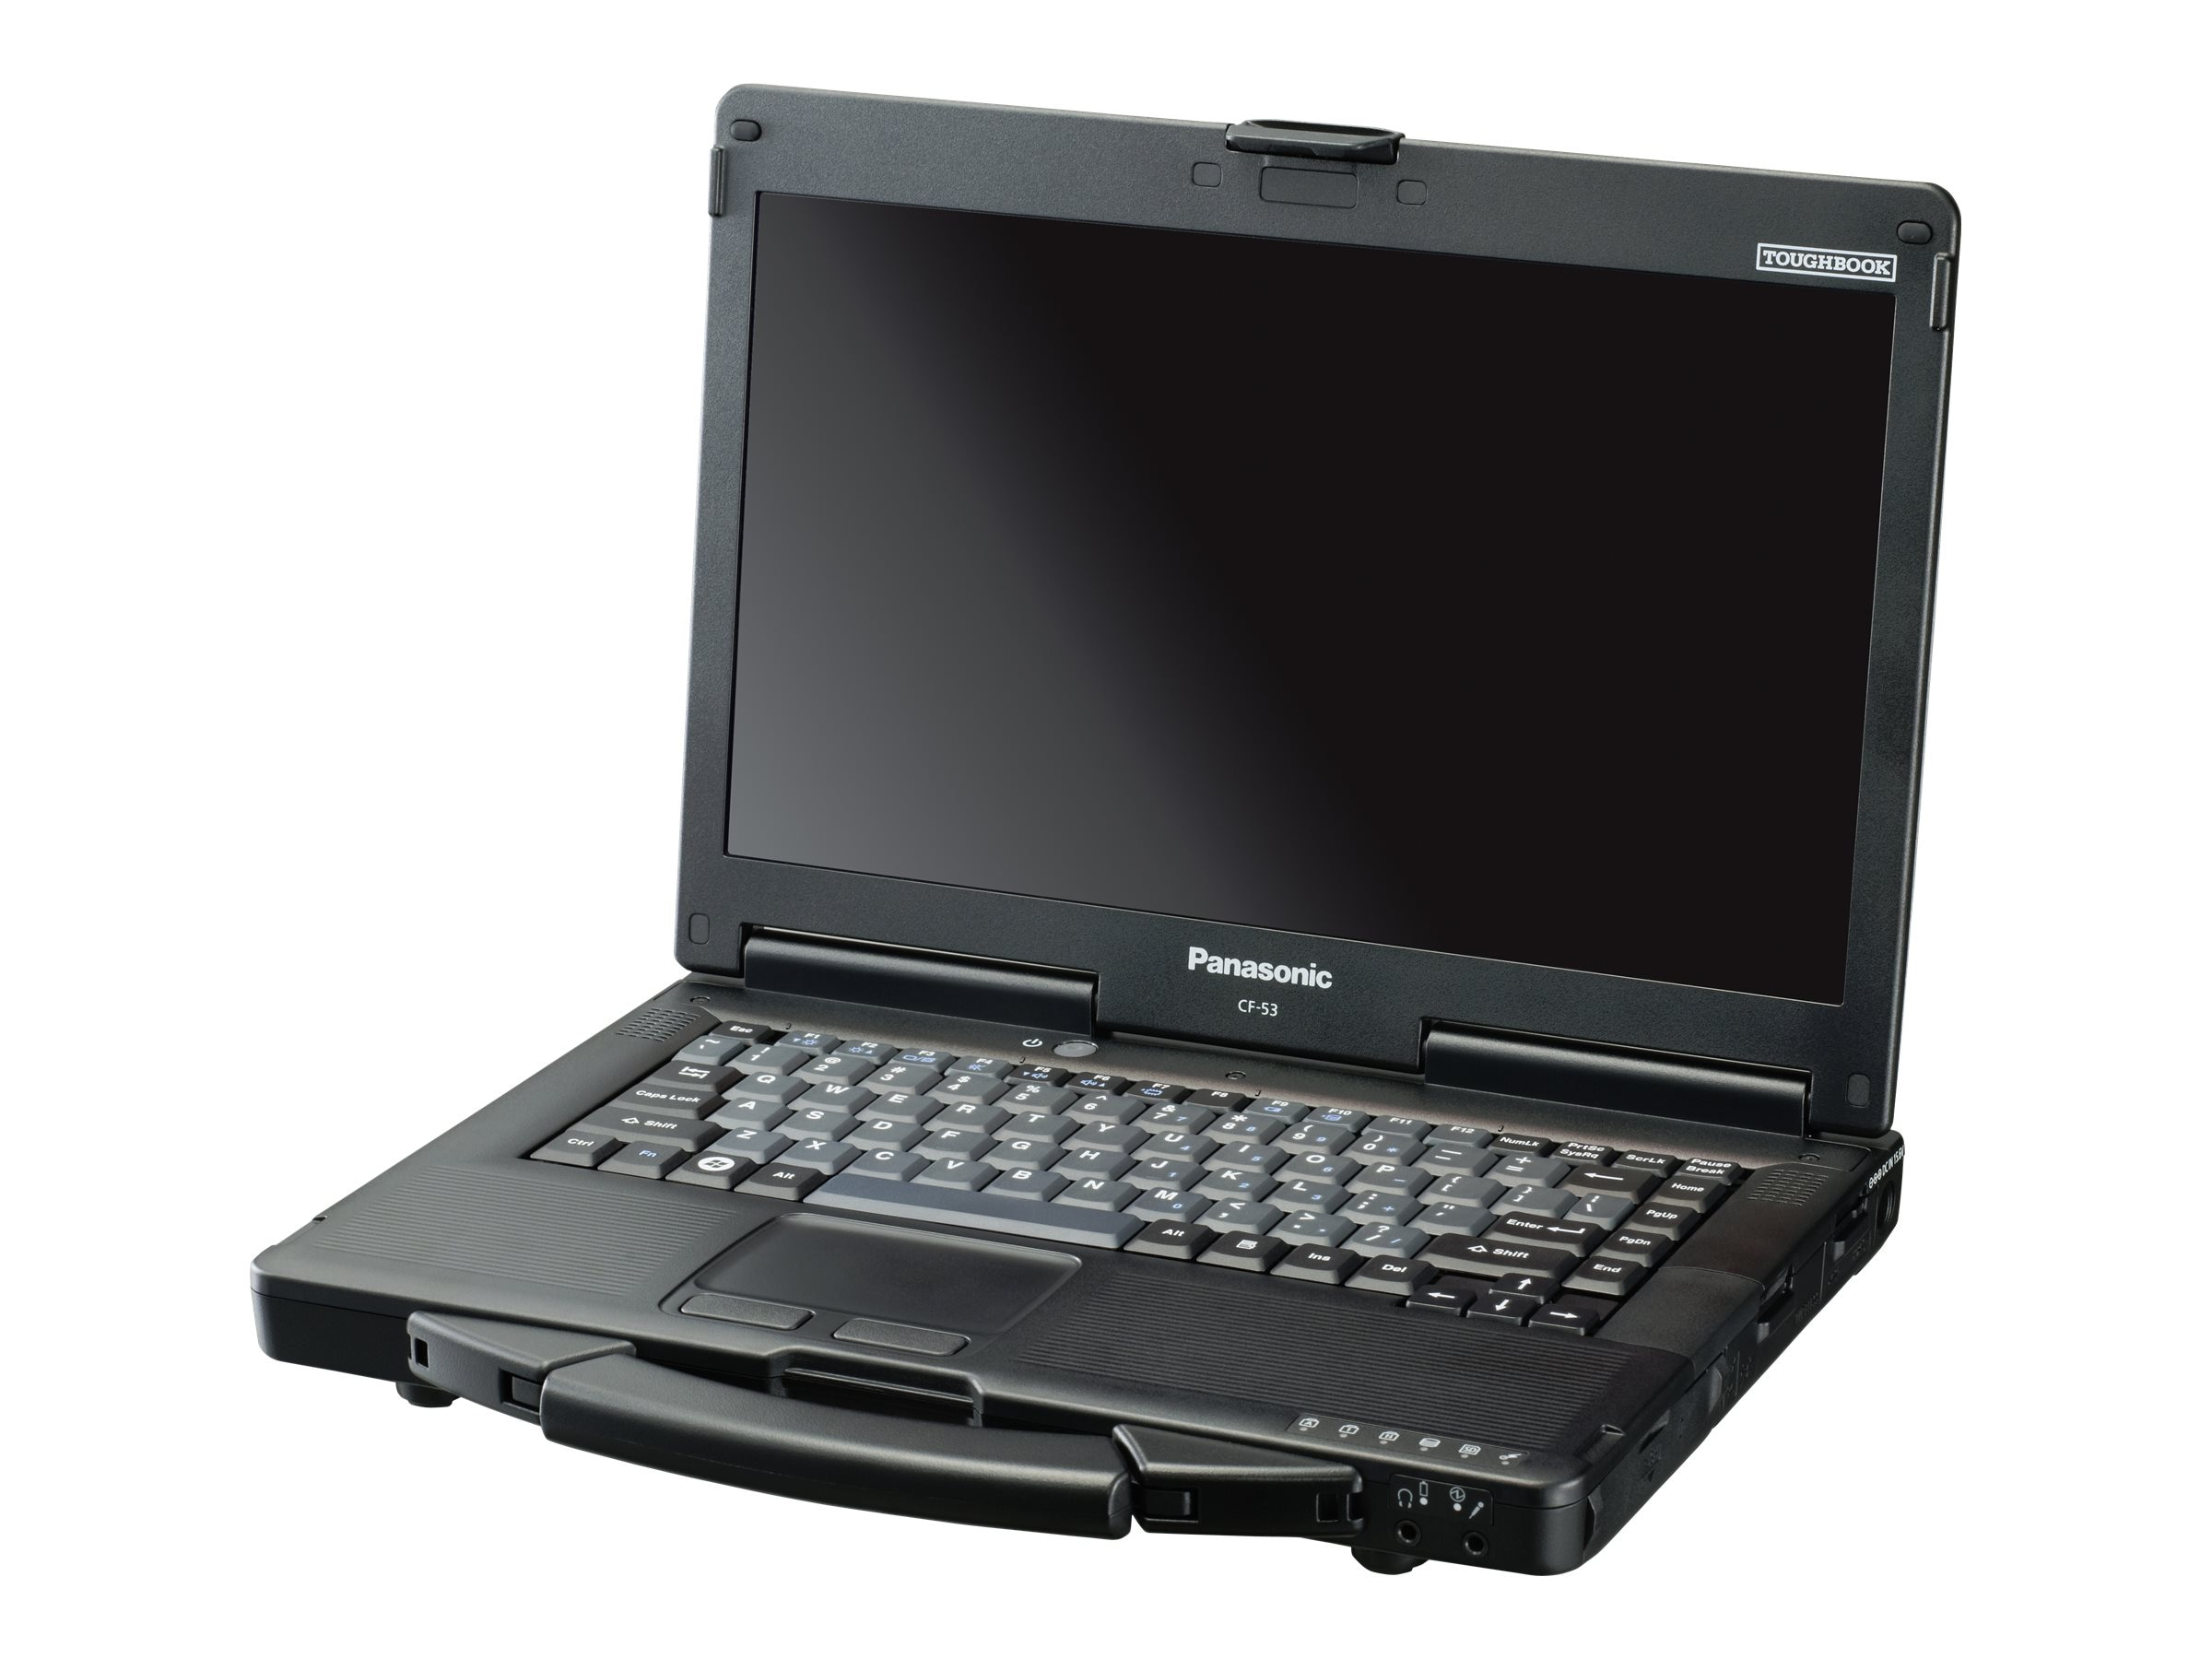 Panasonic Toughbook 53 2GHz Core i5 14in display